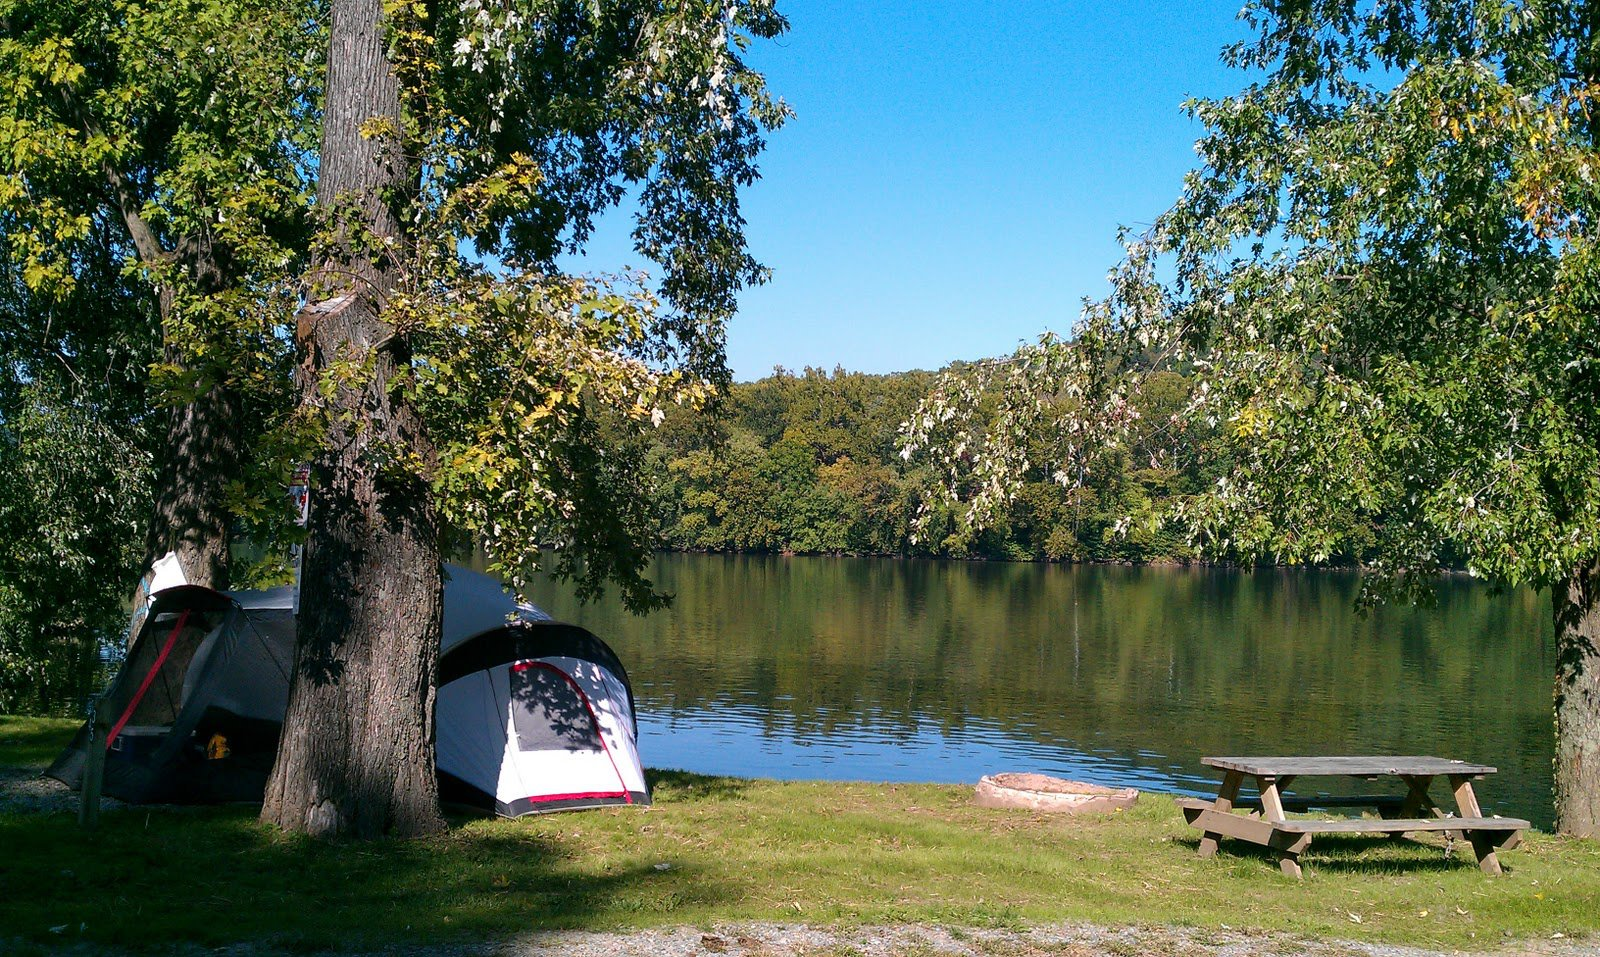 These 9 Amazing Camping Spots Around Washington DC Are An Absolute Must See